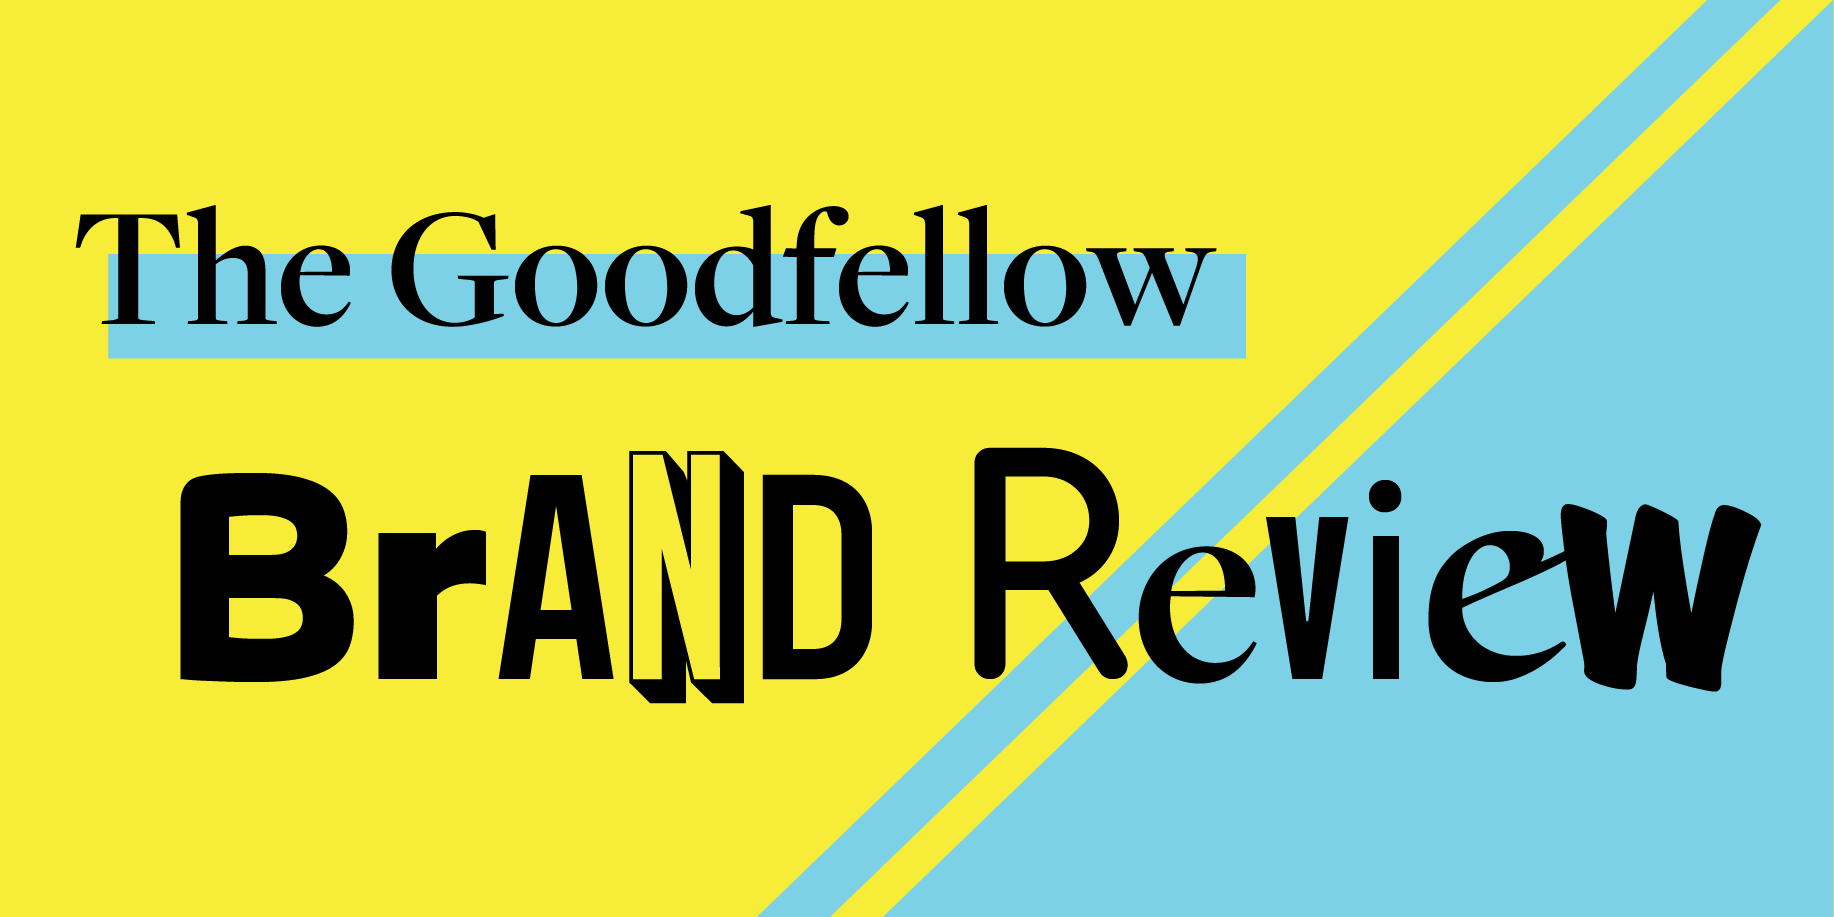 Brand Review - Showcasing the best in Branding, Copy, Design.